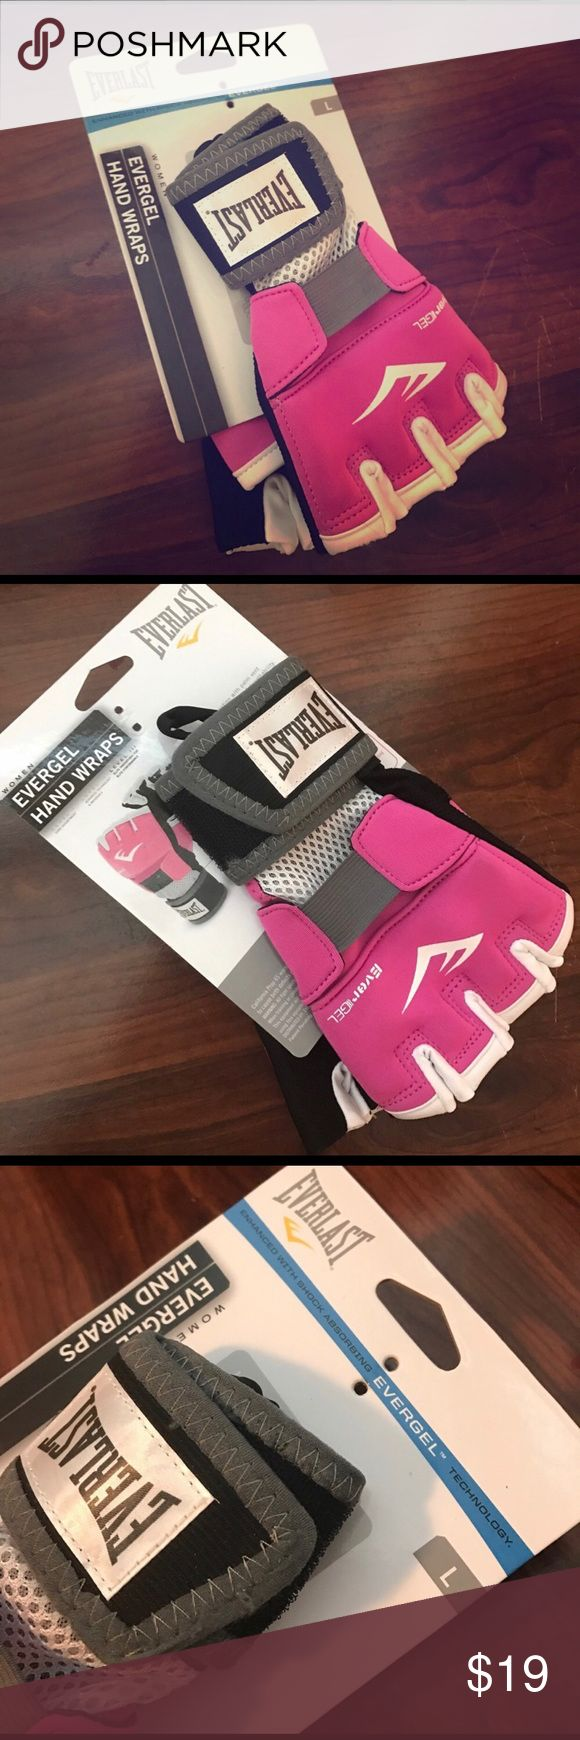 Everlast pink women's ever gel hand wraps New. never used. Size large. Great for wearing under boxing gloves. Good replacement for regular hand wraps. [The are new but sold to another posher. She decided she didn't like them. Sadly when sending them back to me she kept the tag. I pulled them out of the box to ensure that they were still in-tacked and have since kept them in their box] everlast Accessories Gloves & Mittens